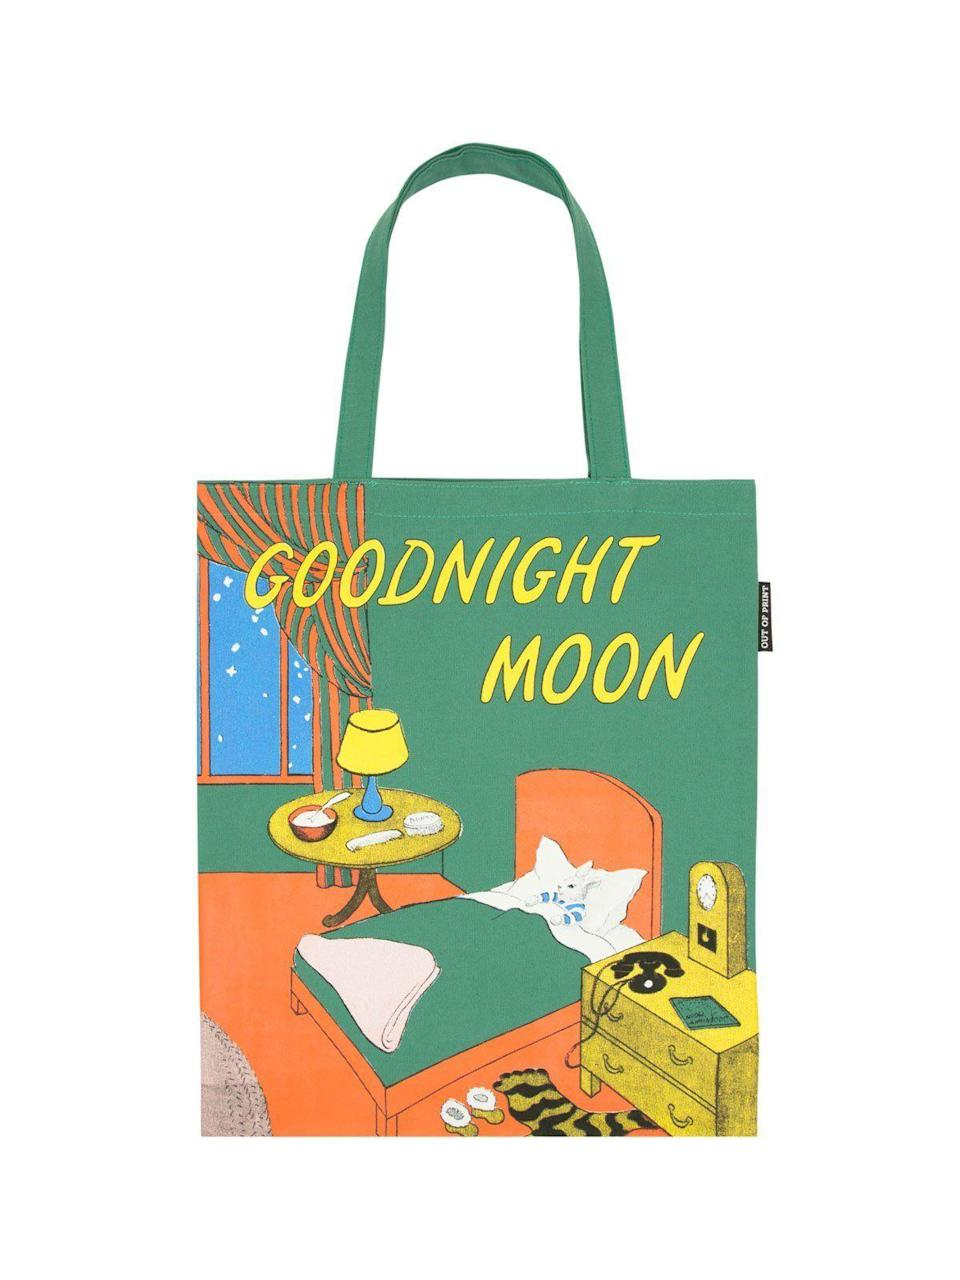 "<p><strong>Out of Print</strong></p><p>outofprint.com</p><p><strong>$20.00</strong></p><p><a href=""https://outofprint.com/collections/totes/products/goodnight-moon-tote"" rel=""nofollow noopener"" target=""_blank"" data-ylk=""slk:Shop Now"" class=""link rapid-noclick-resp"">Shop Now</a></p><p>We all have memories of reading our favorite books over and over again as a child. Broadcast your favorite with this fun tote bag.</p>"